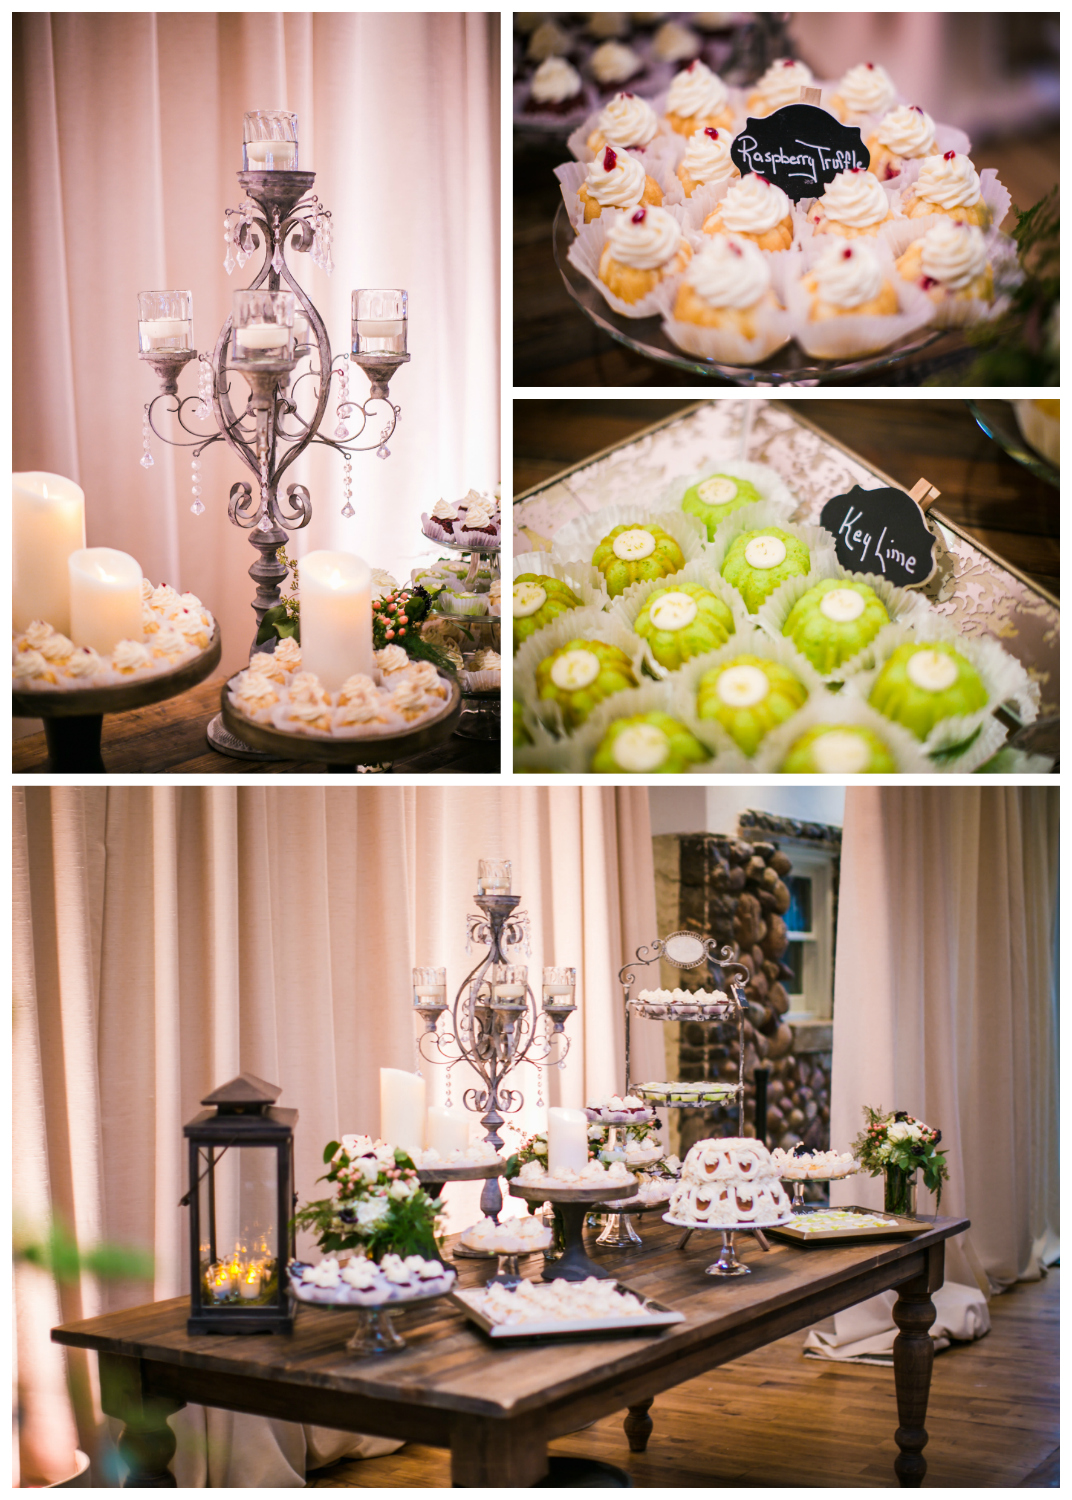 Wedding details by design works at Highlands Ranch Mansion.    hotographed by JMGant Photography, Denver Colorado wedding photographer.